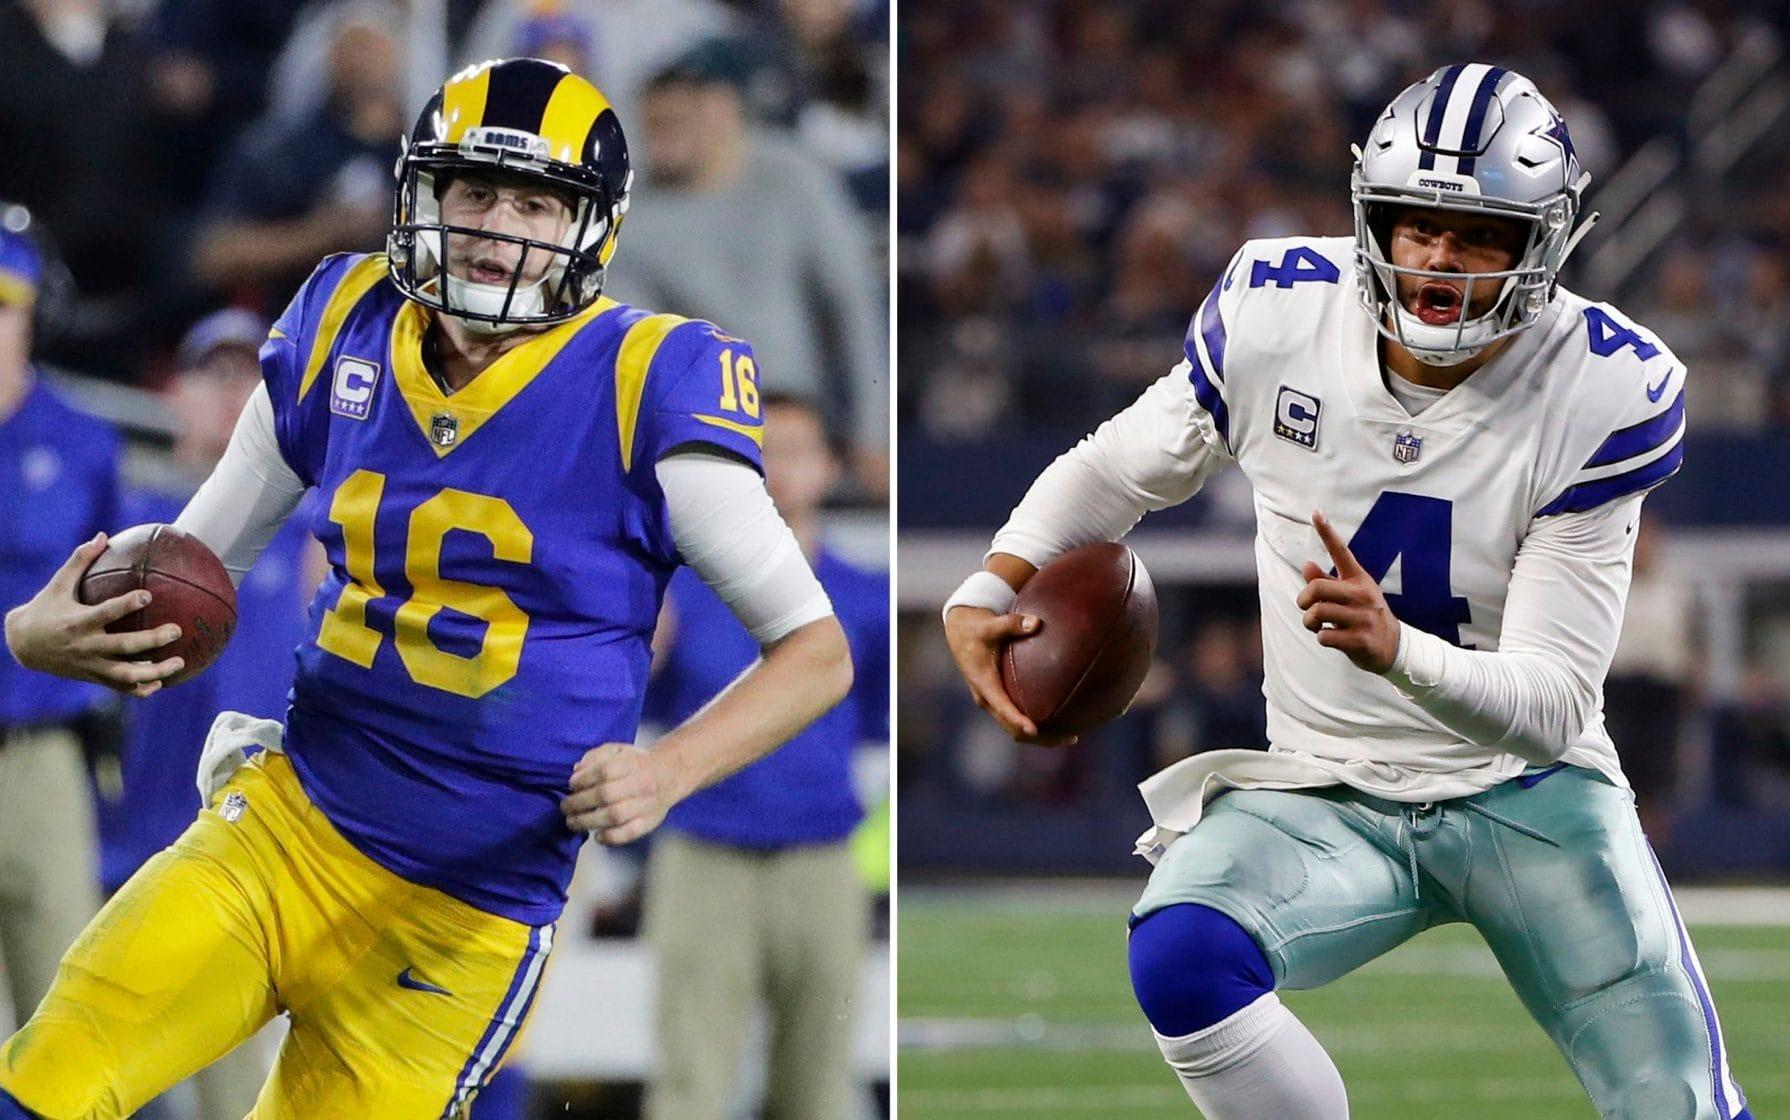 NFL playoffs divisional round preview: Its Luck v Mahomes in all star shootout, and why the Cowboys can upset the Rams